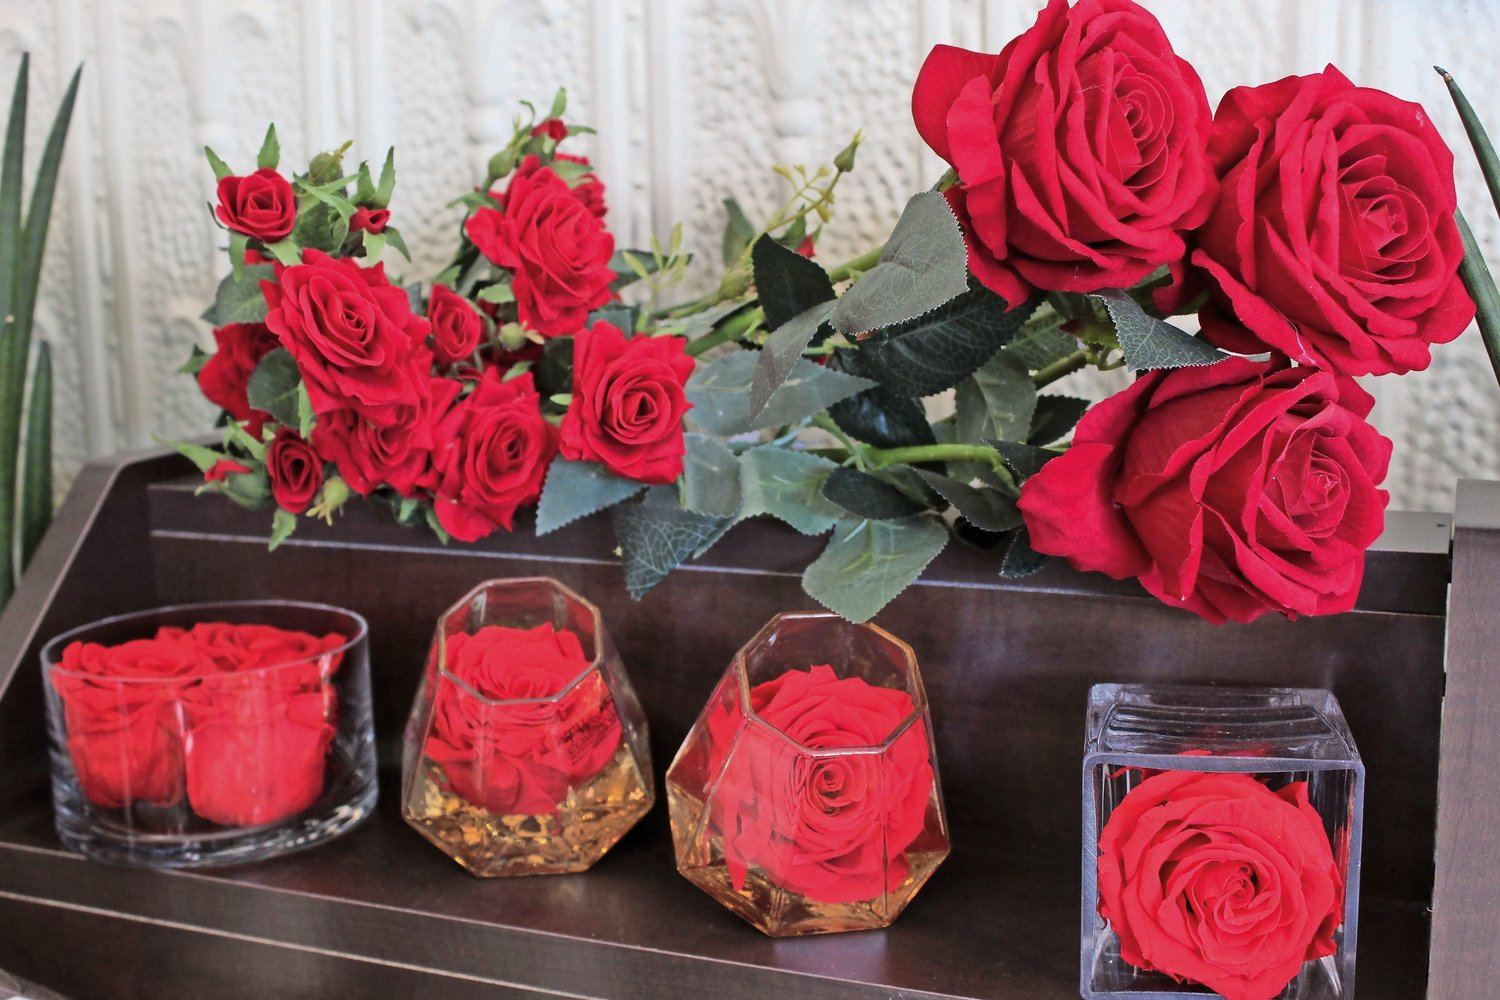 Beautiful Flowers Floristry has an array of forever roses available for purchase.